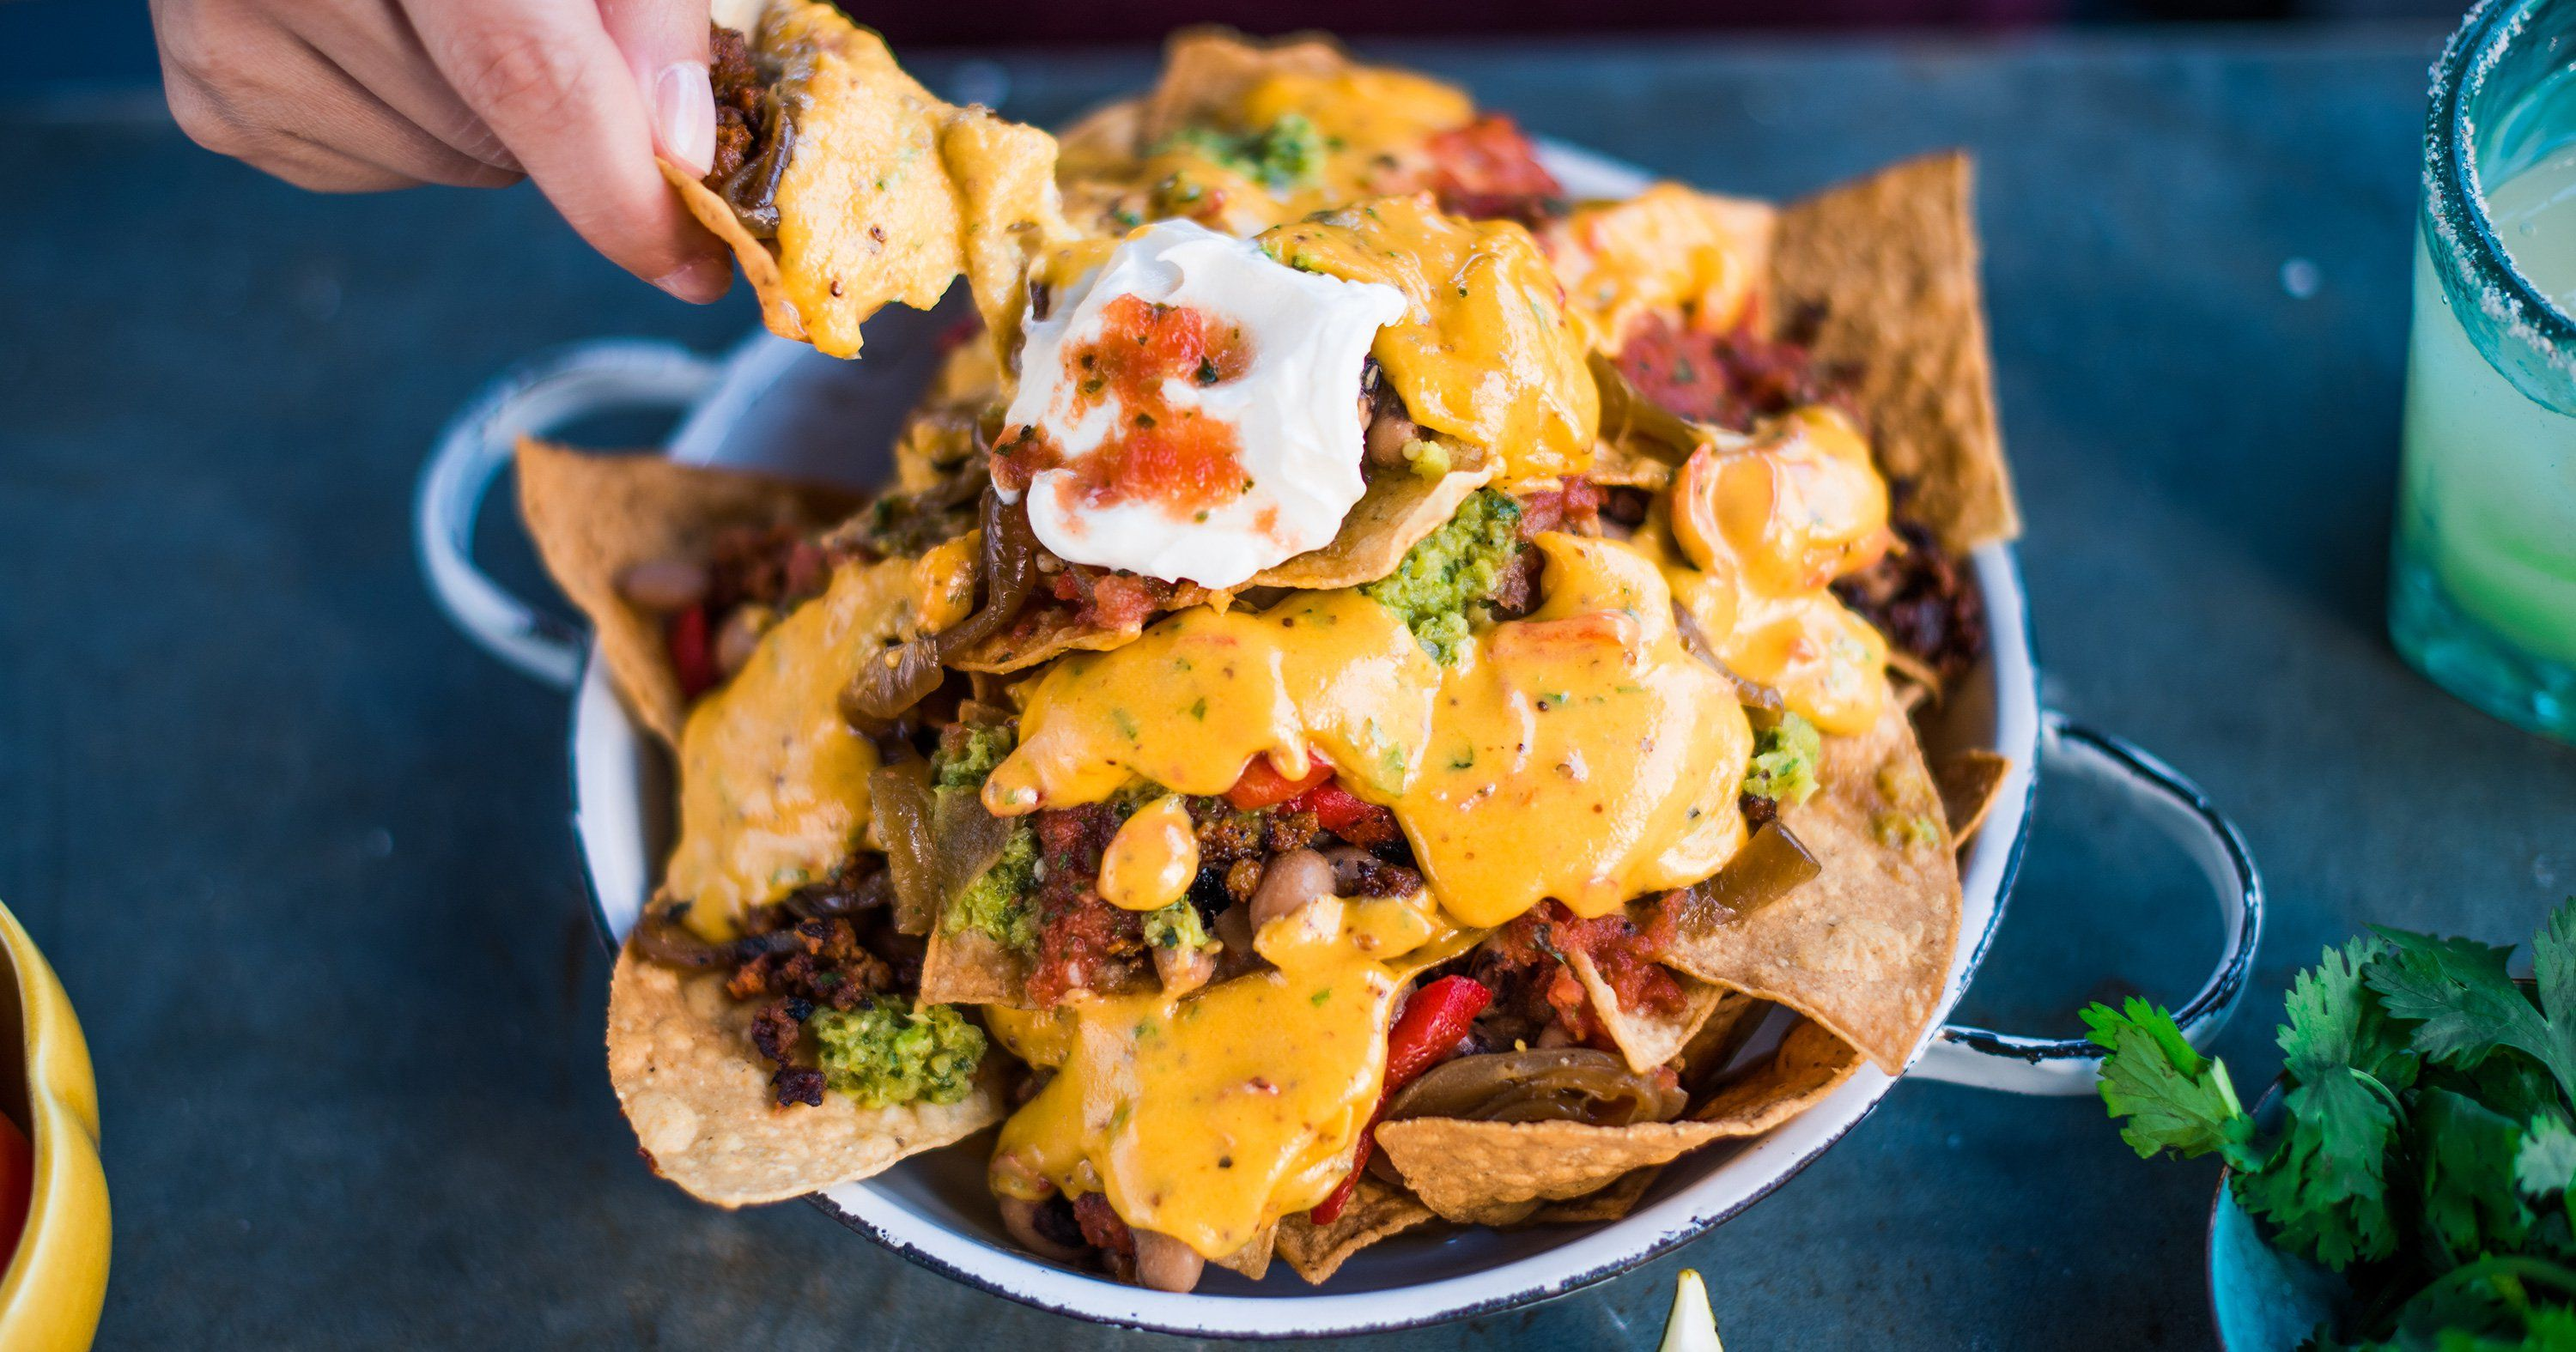 Mix Up Your Nachos This Summer